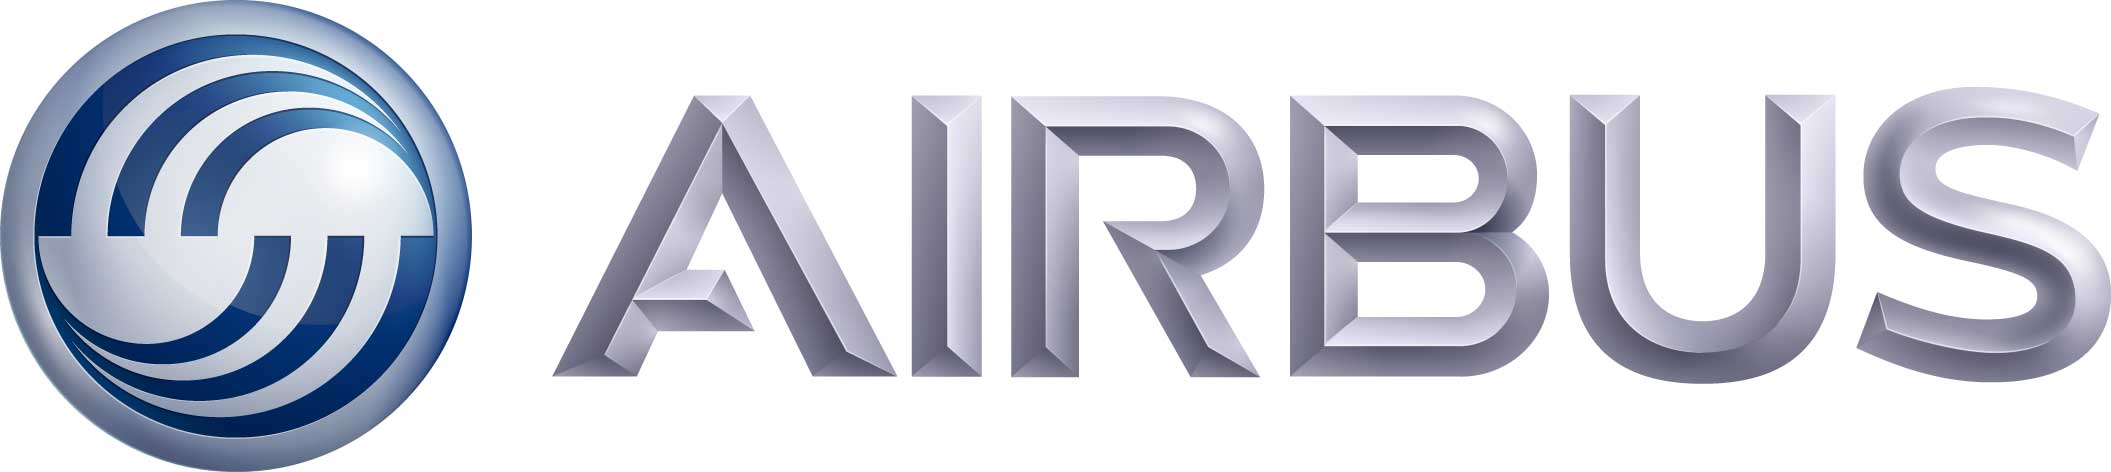 airbus png transparent airbus png images pluspng birthday logos for woman birthday logos images